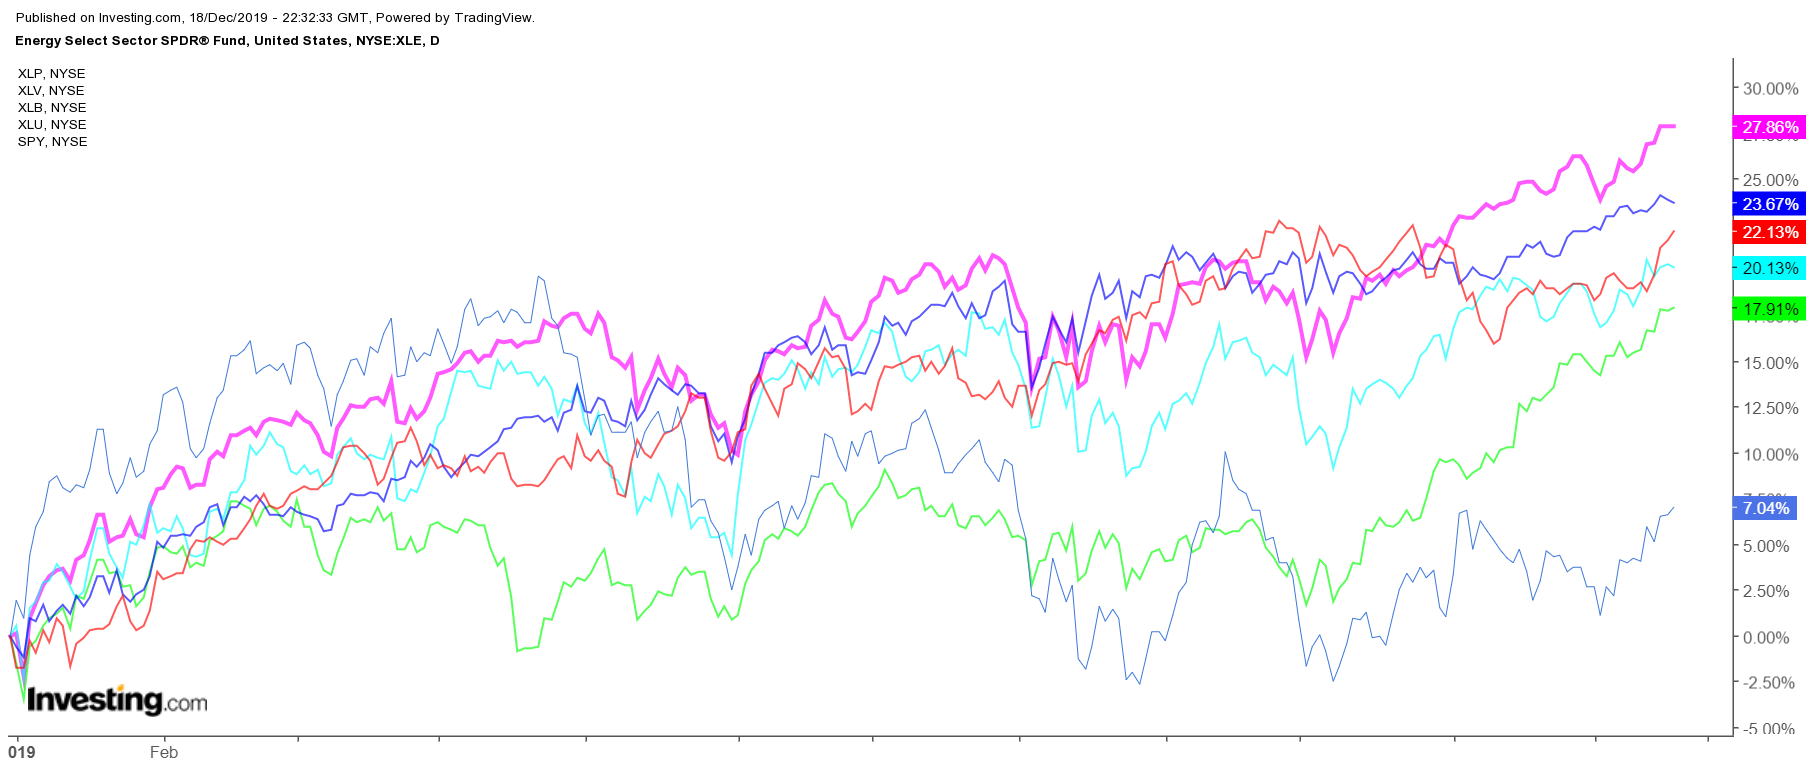 Energy Select Sector SPDR, Daily